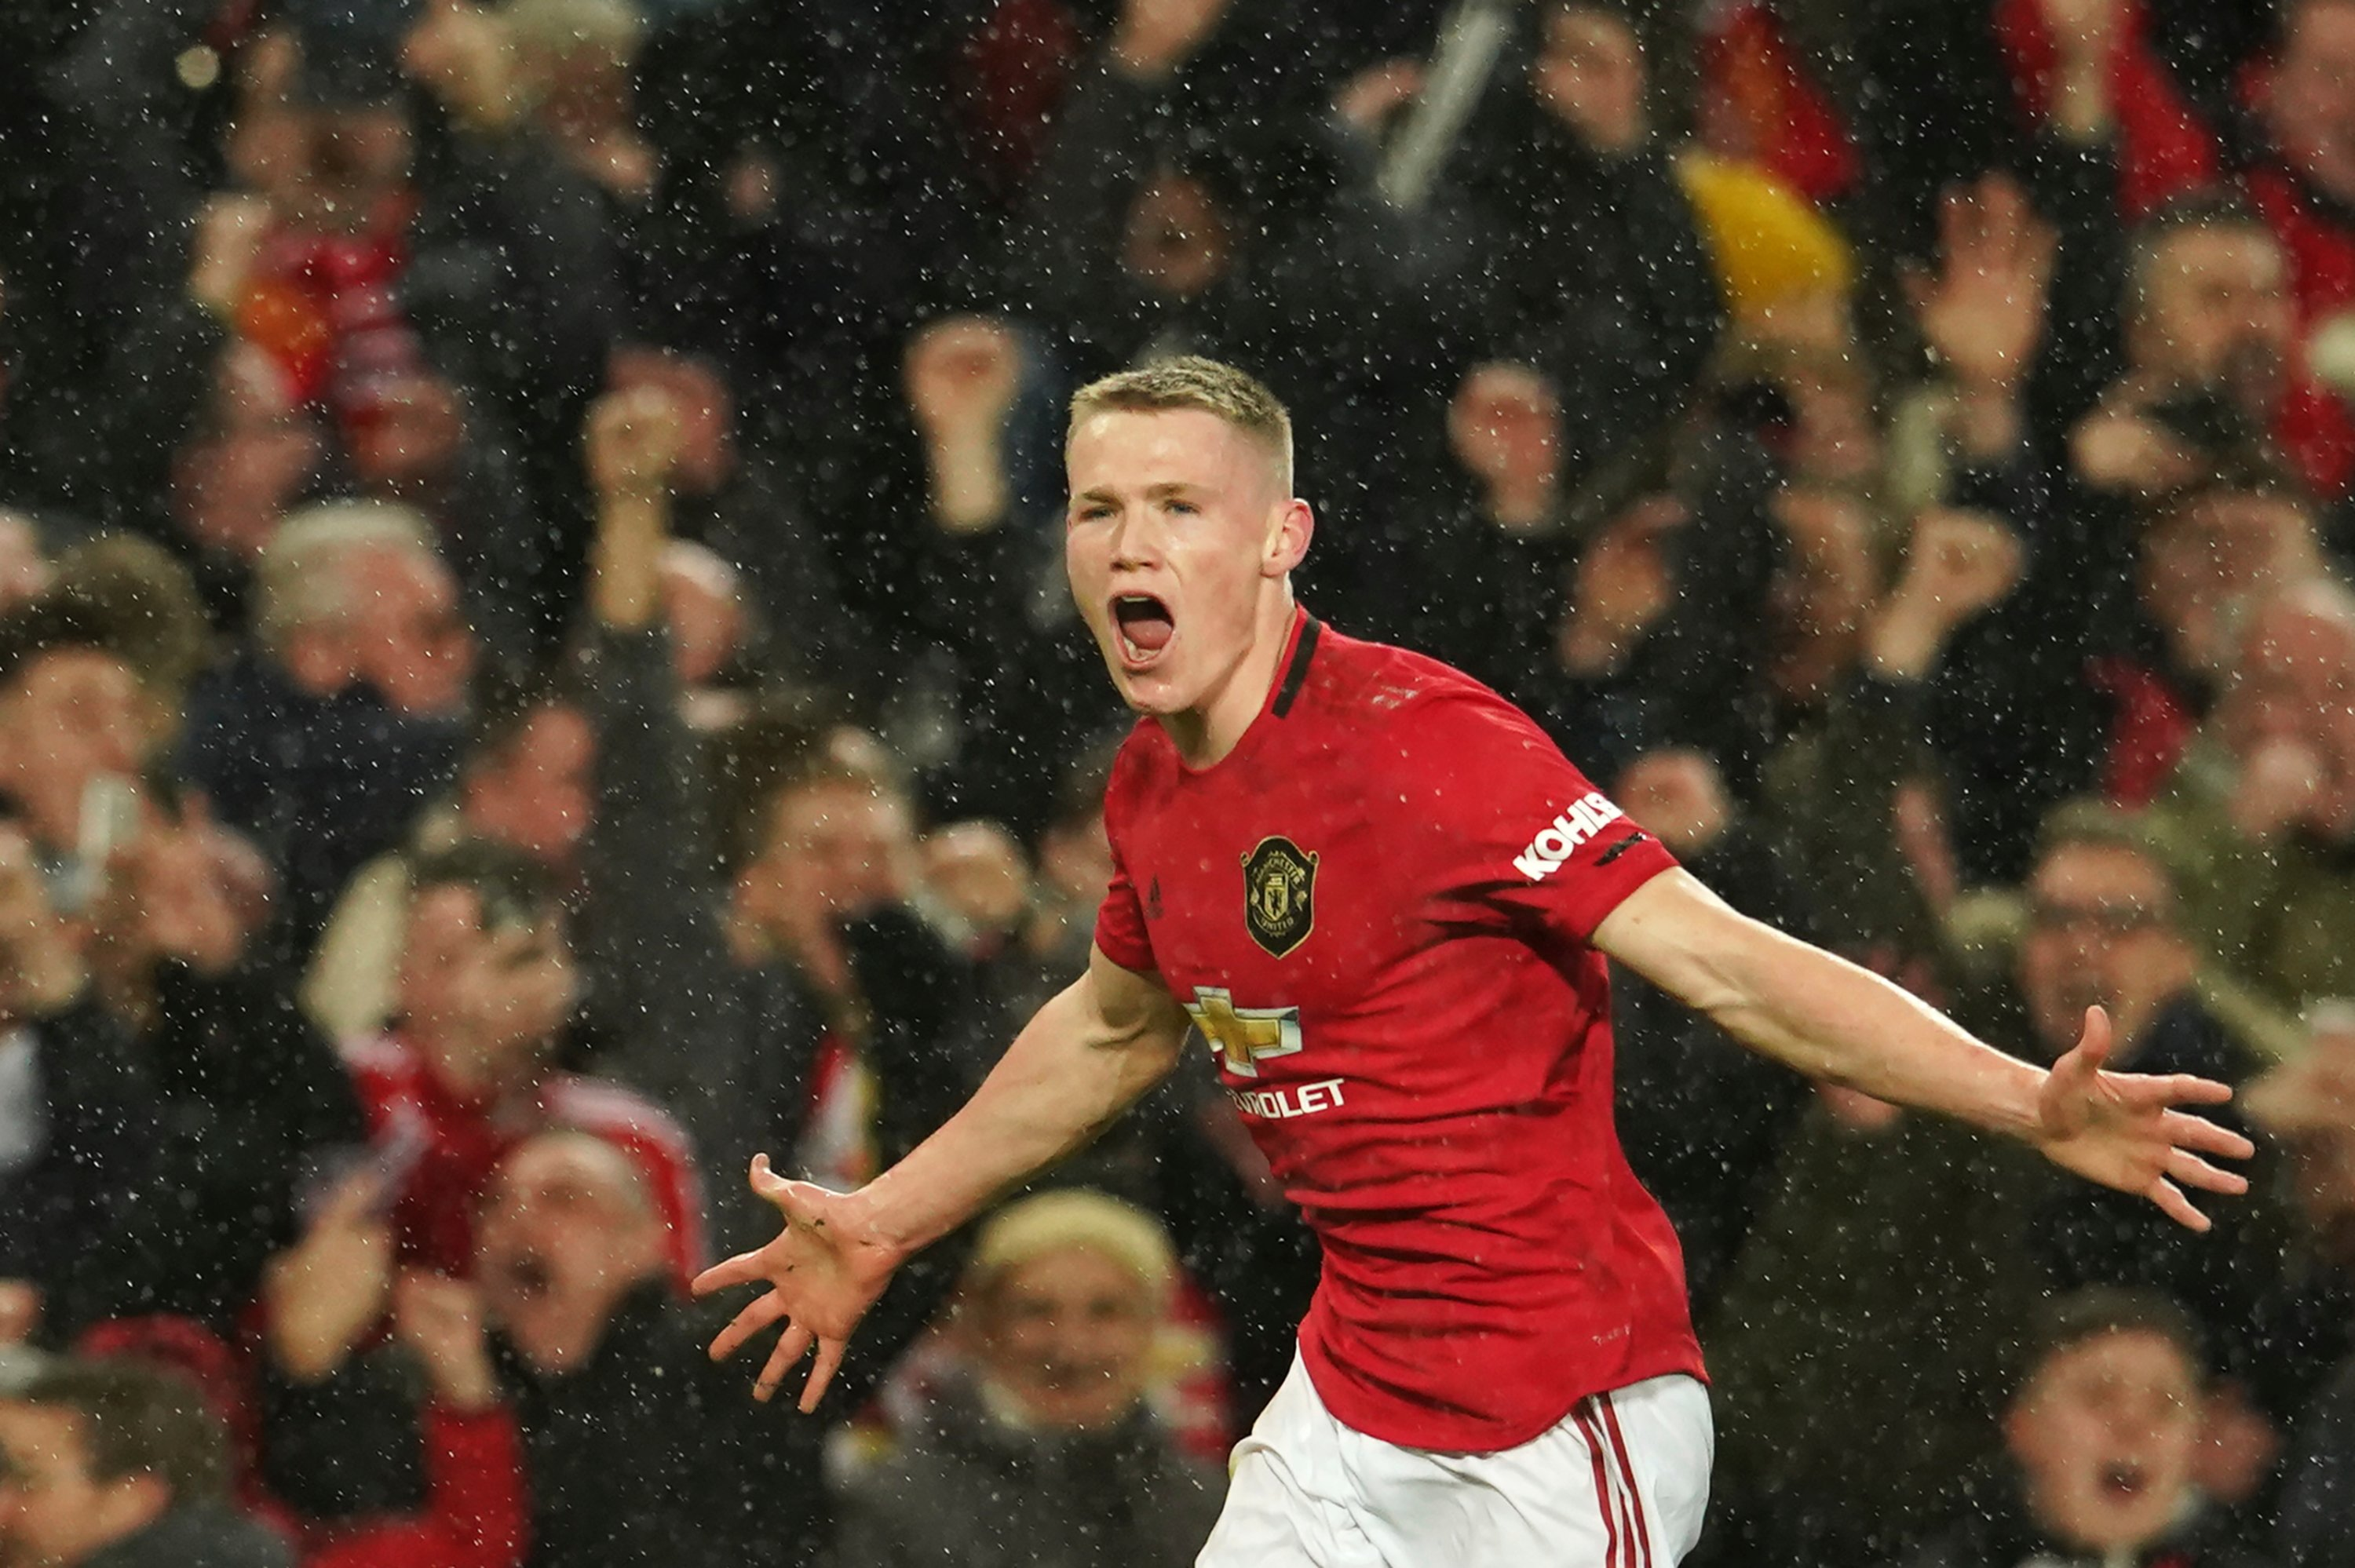 McTominay extends contract with Manchester United | Daily Sabah